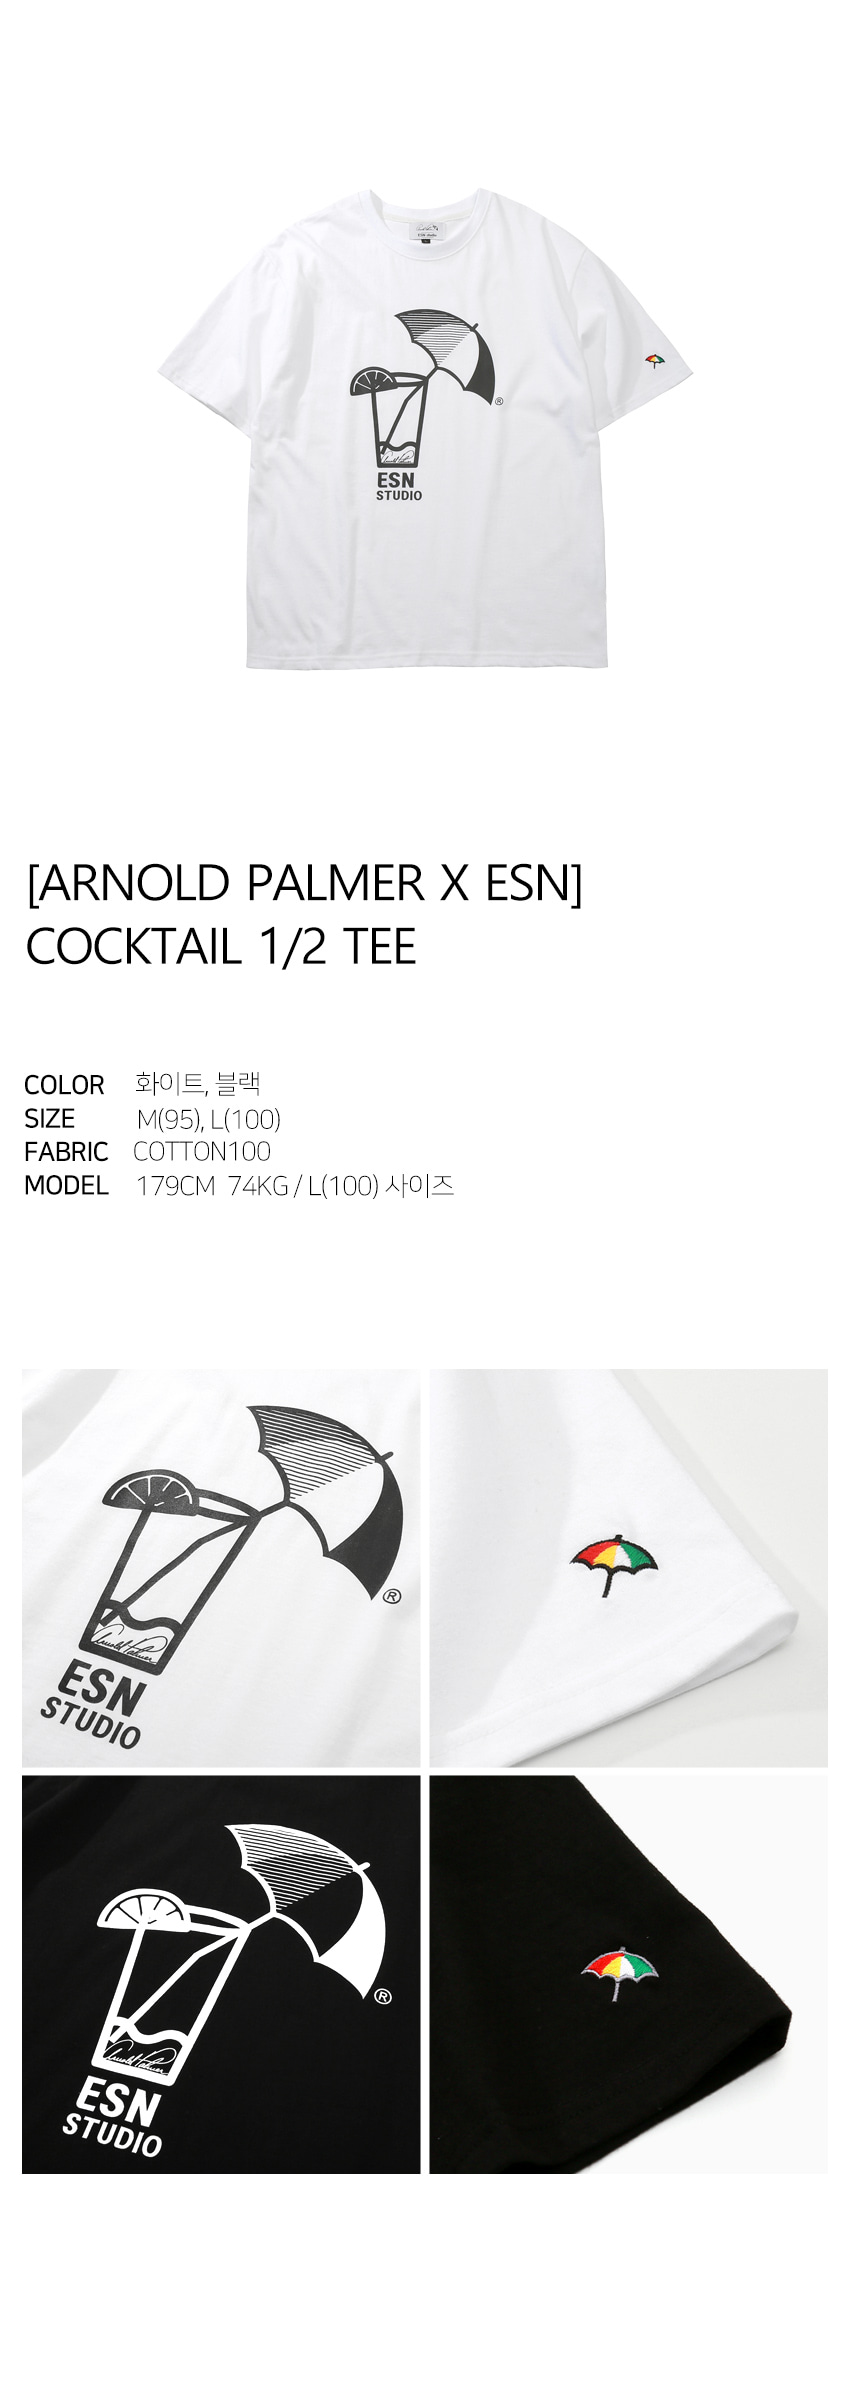 [ARNOLD PALMER X ESN] Cocktail 1/2 Tee white